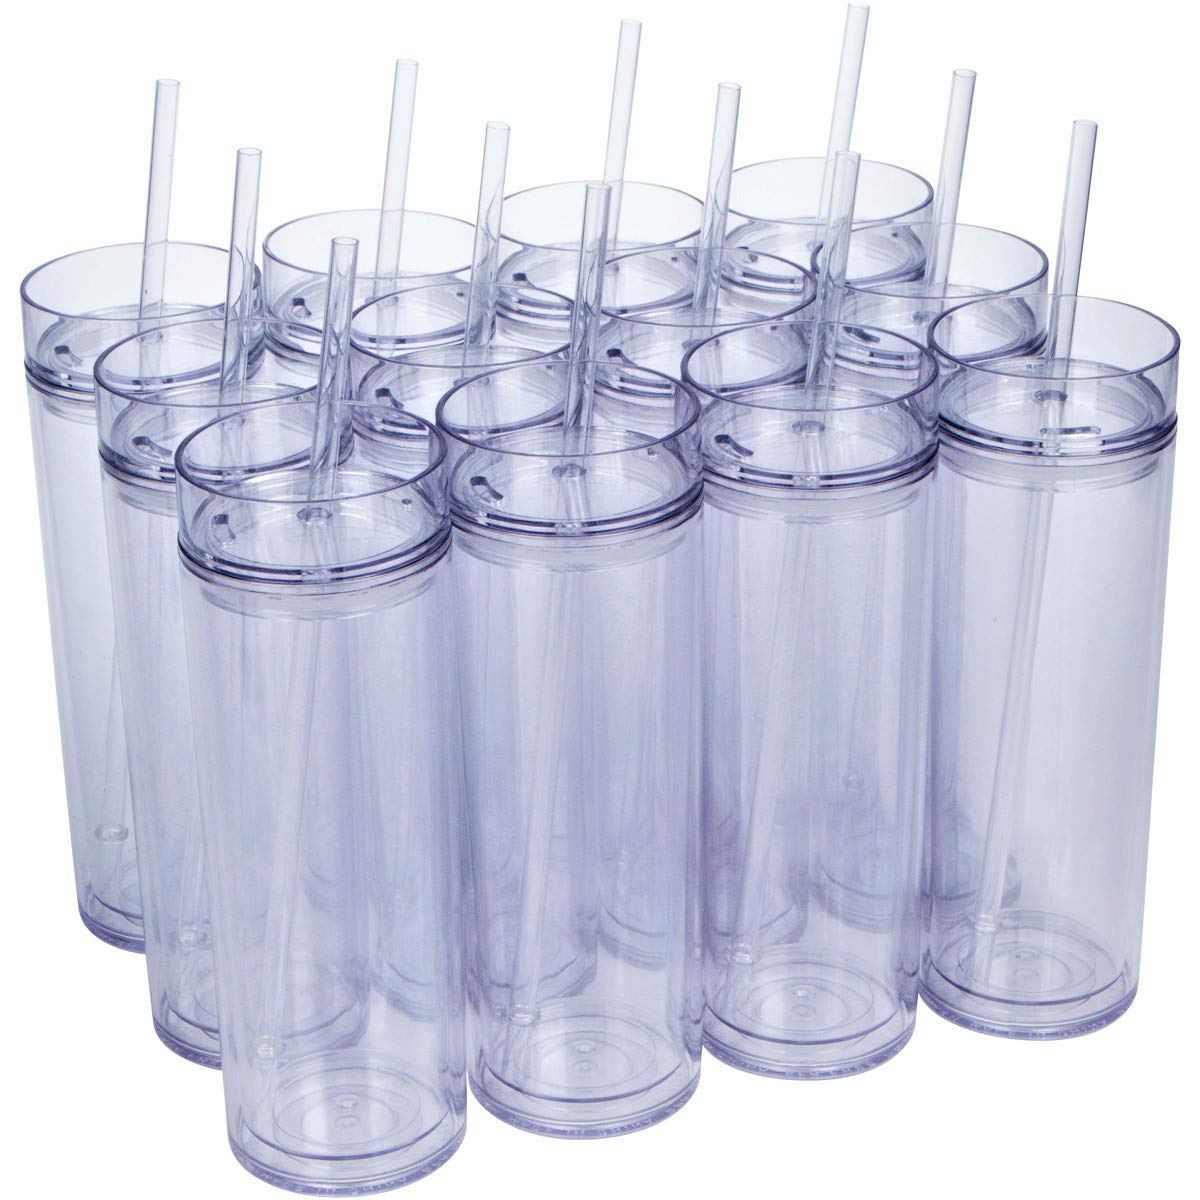 12 Pack - Insulated Acrylic Tumblers with Lids and Reusable Straws, 16oz Clear Skinny Travel Water Bottles, Double Wall